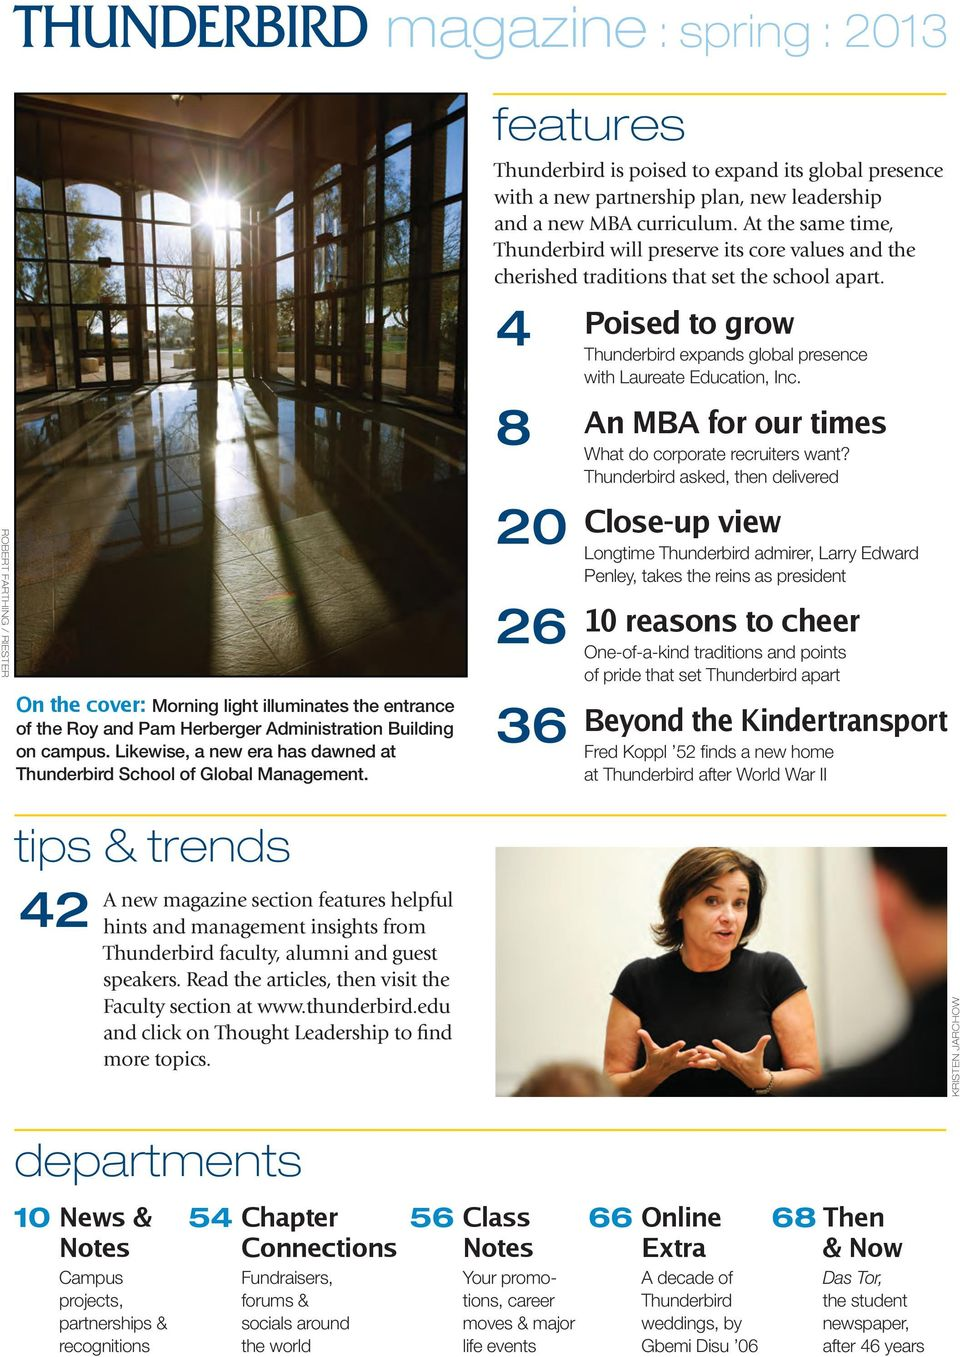 tips & trends 42 A new magazine section features helpful hints and management insights from Thunderbird faculty, alumni and guest speakers. Read the articles, then visit the Faculty section at www.